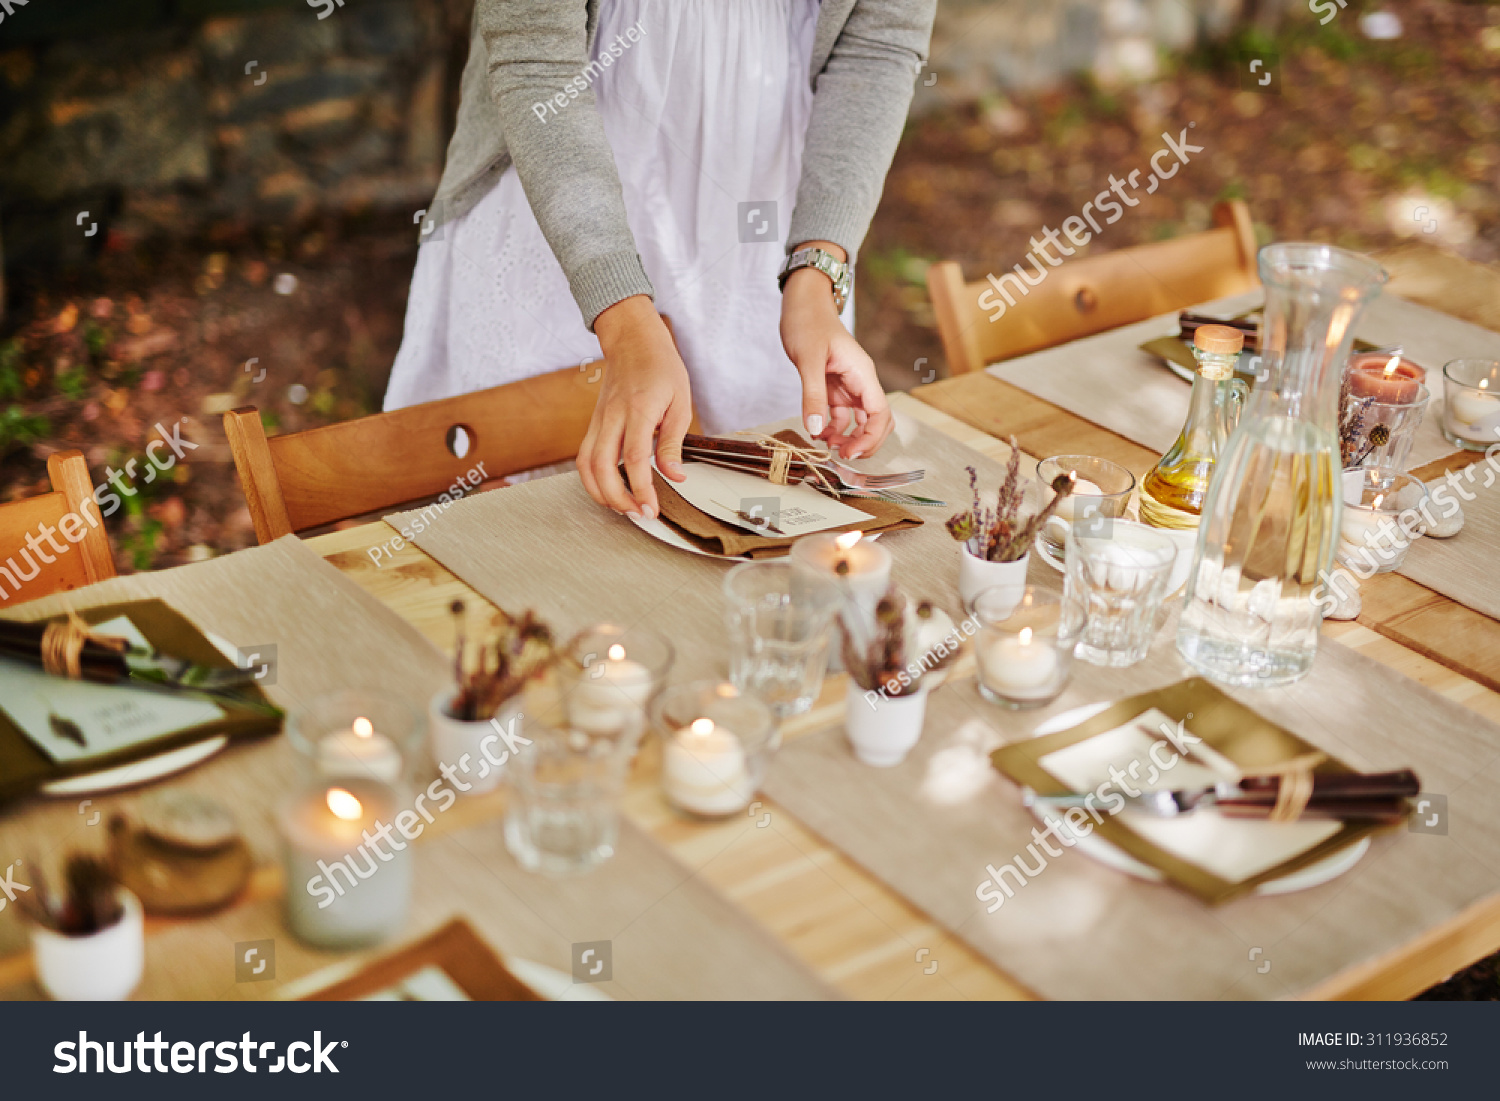 Thanksgiving dinner table being served for guests by waitress